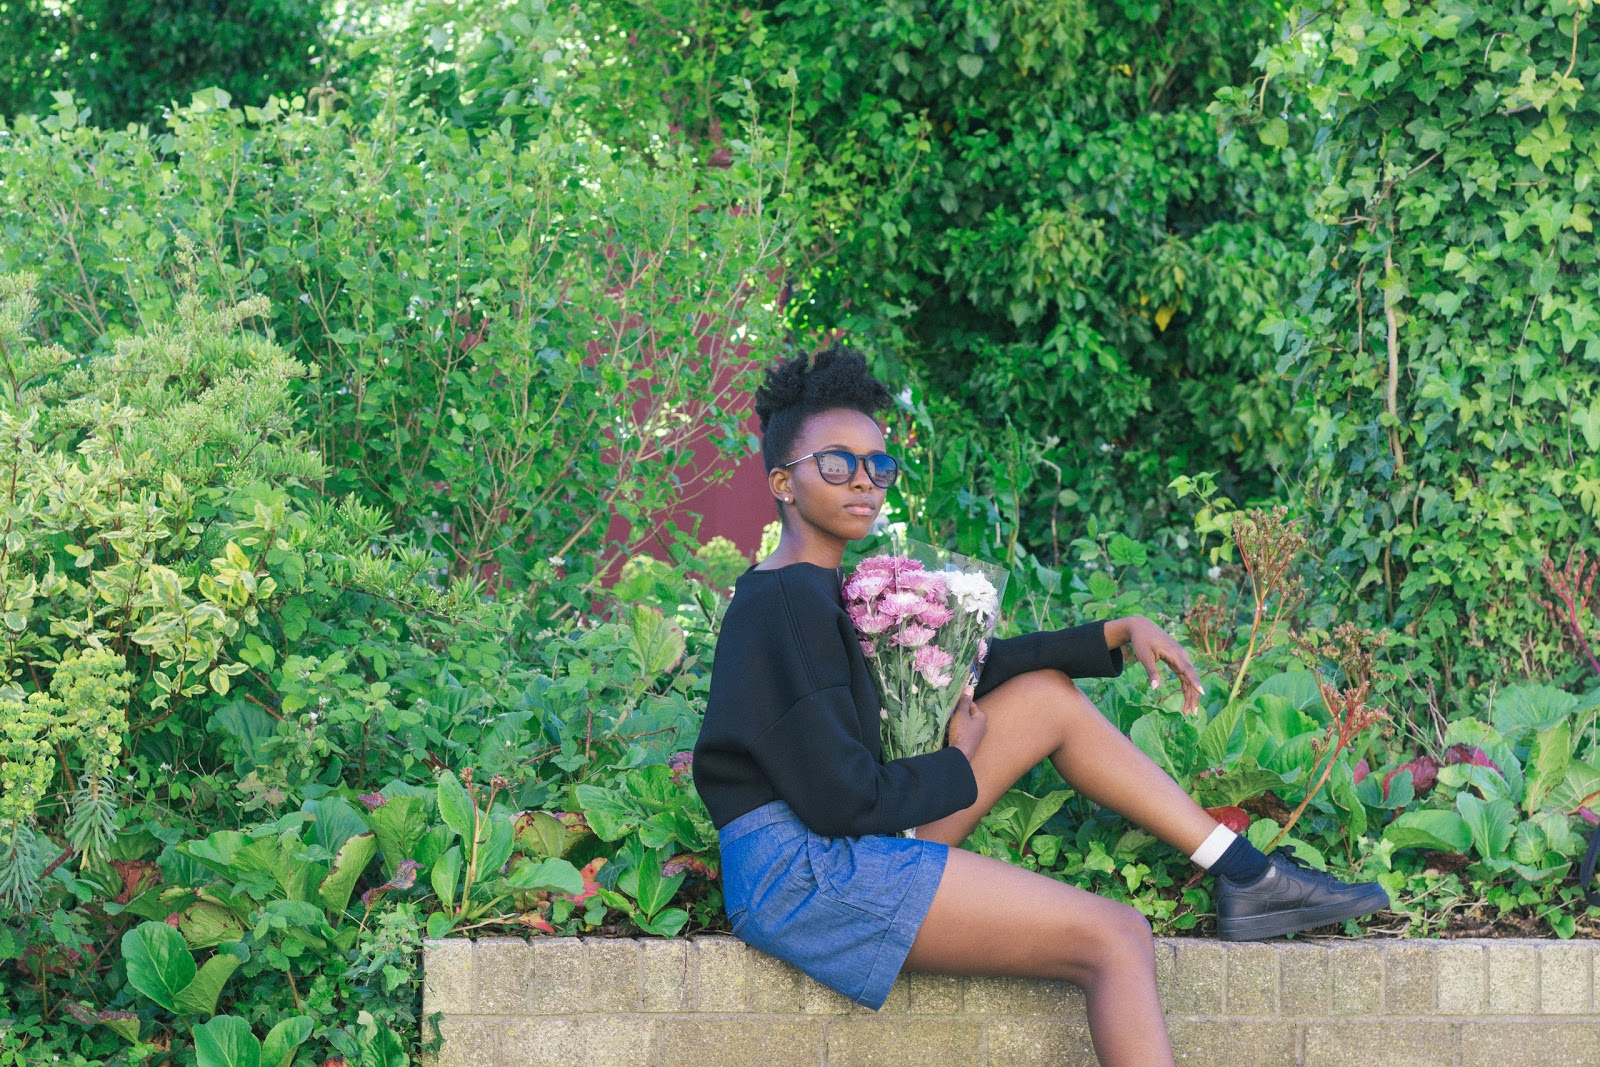 Zara Neoprene Jumper, Urban Outfitters Shorts, Nike Air Force 1,